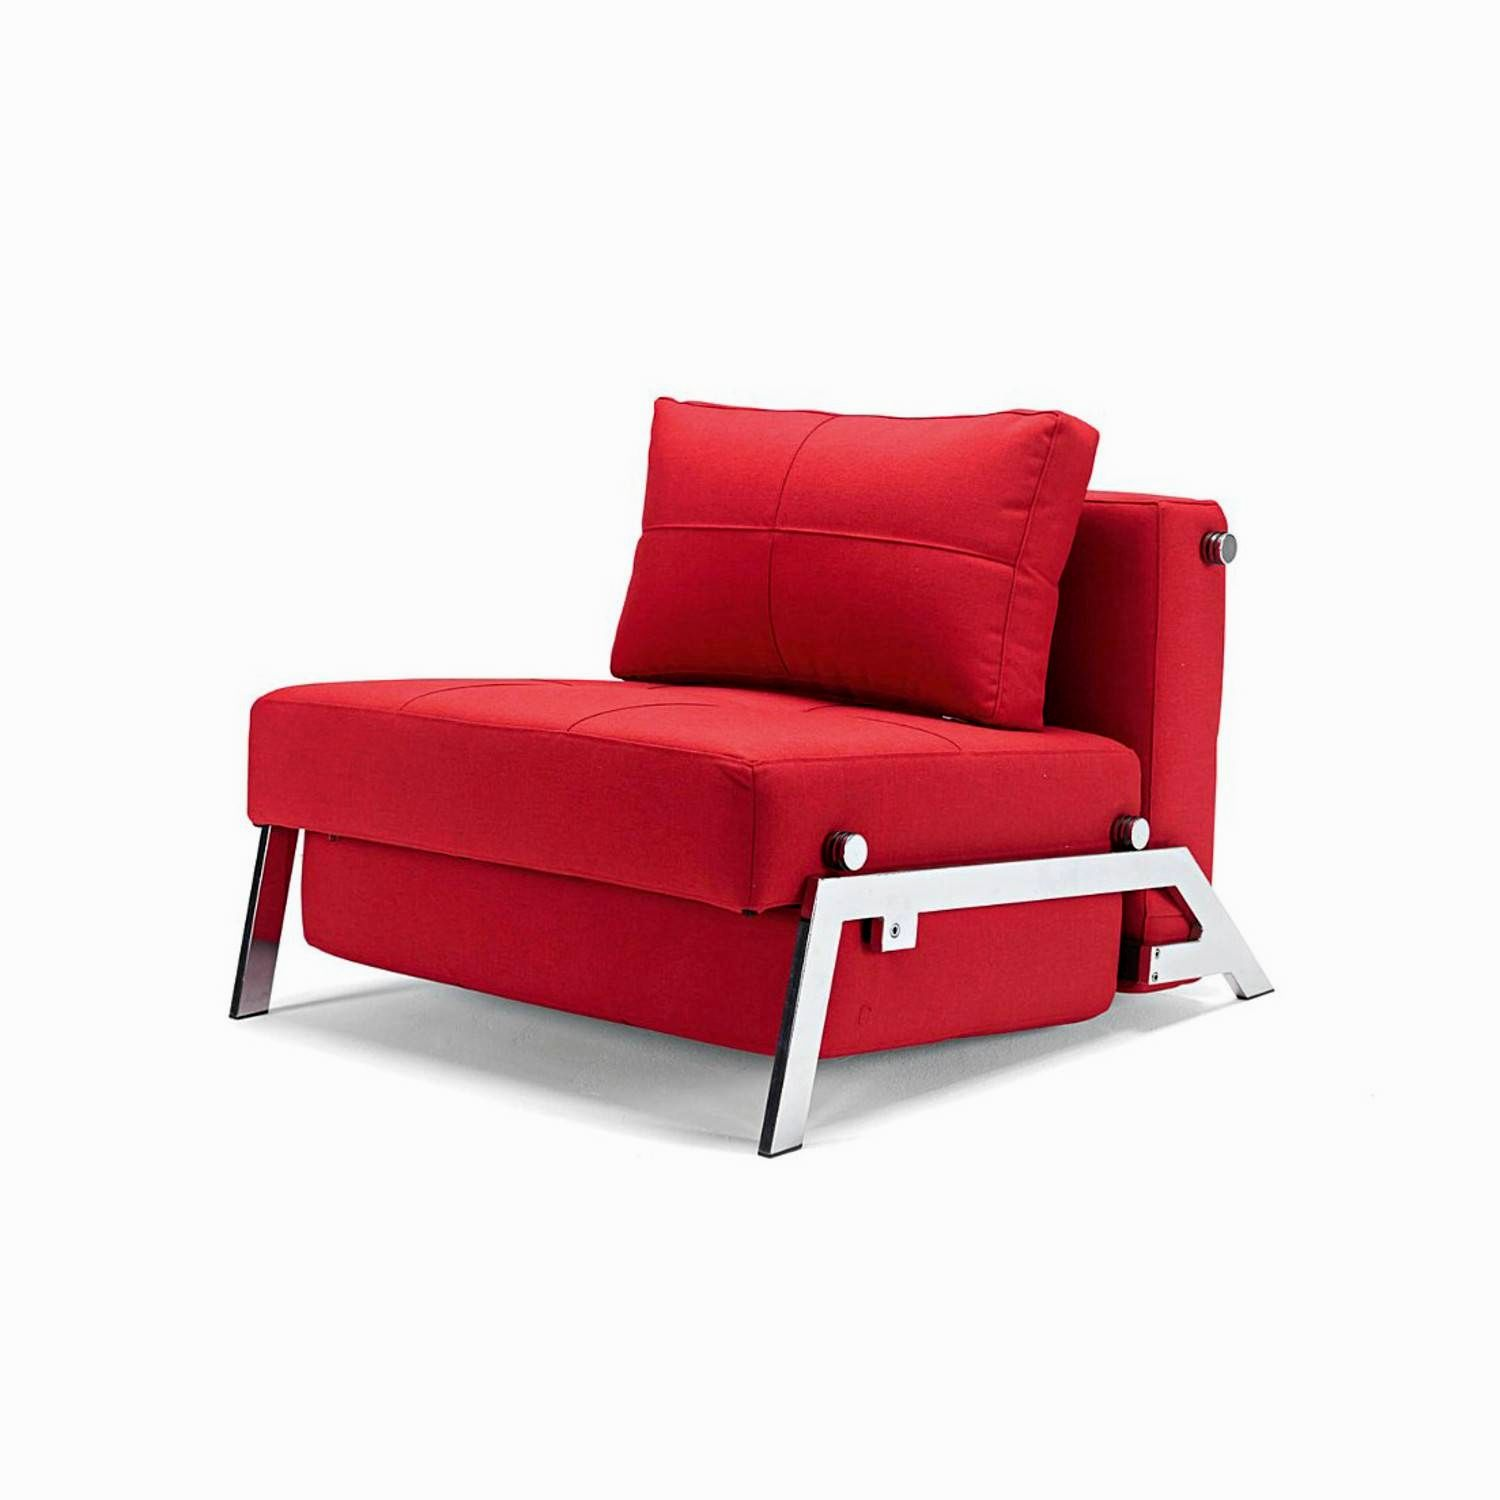 wonderful long chair sofa concept-Best Long Chair sofa Picture